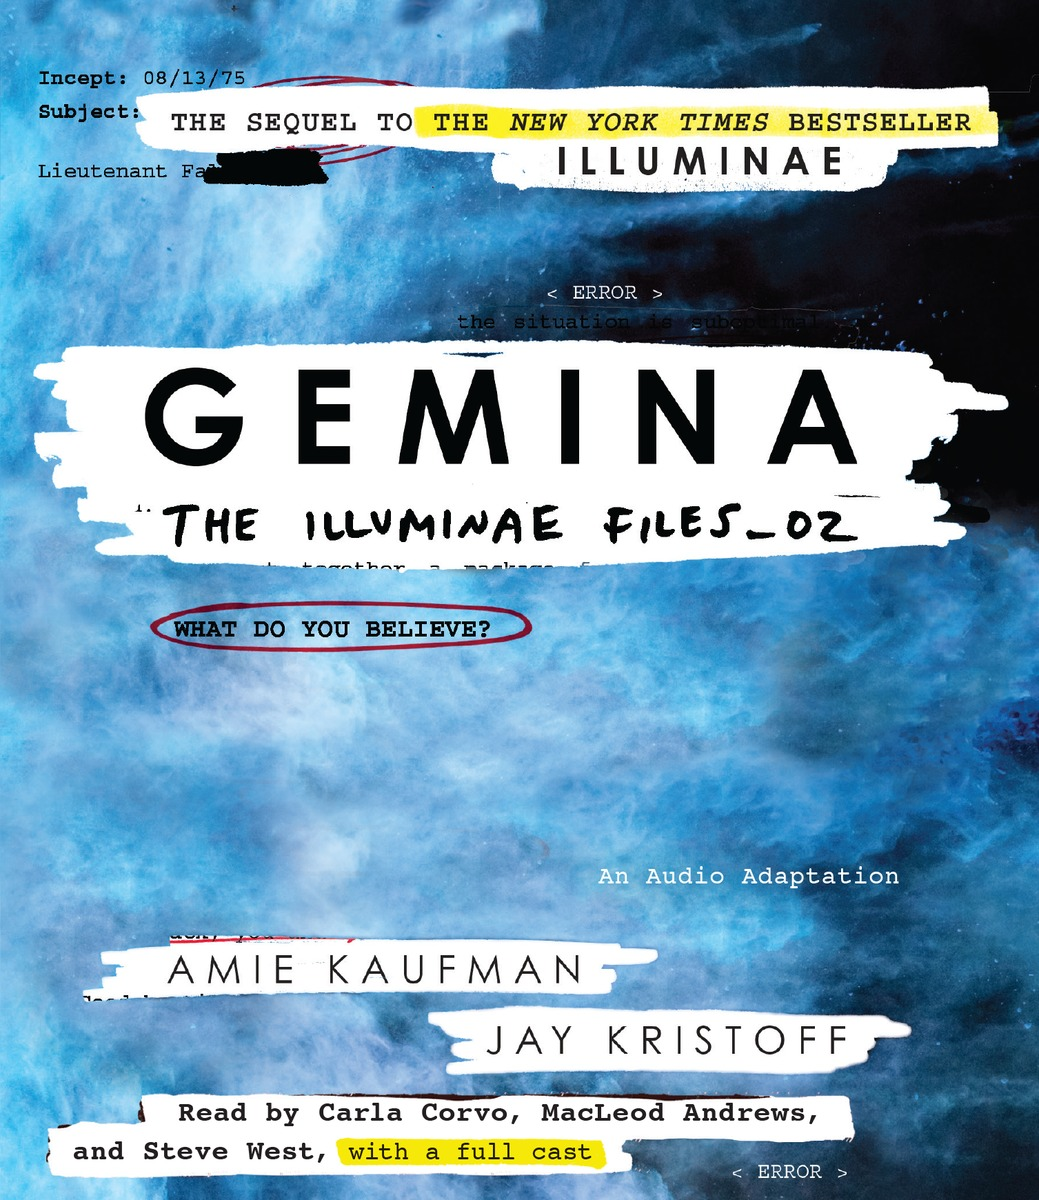 Gemina the station mouse